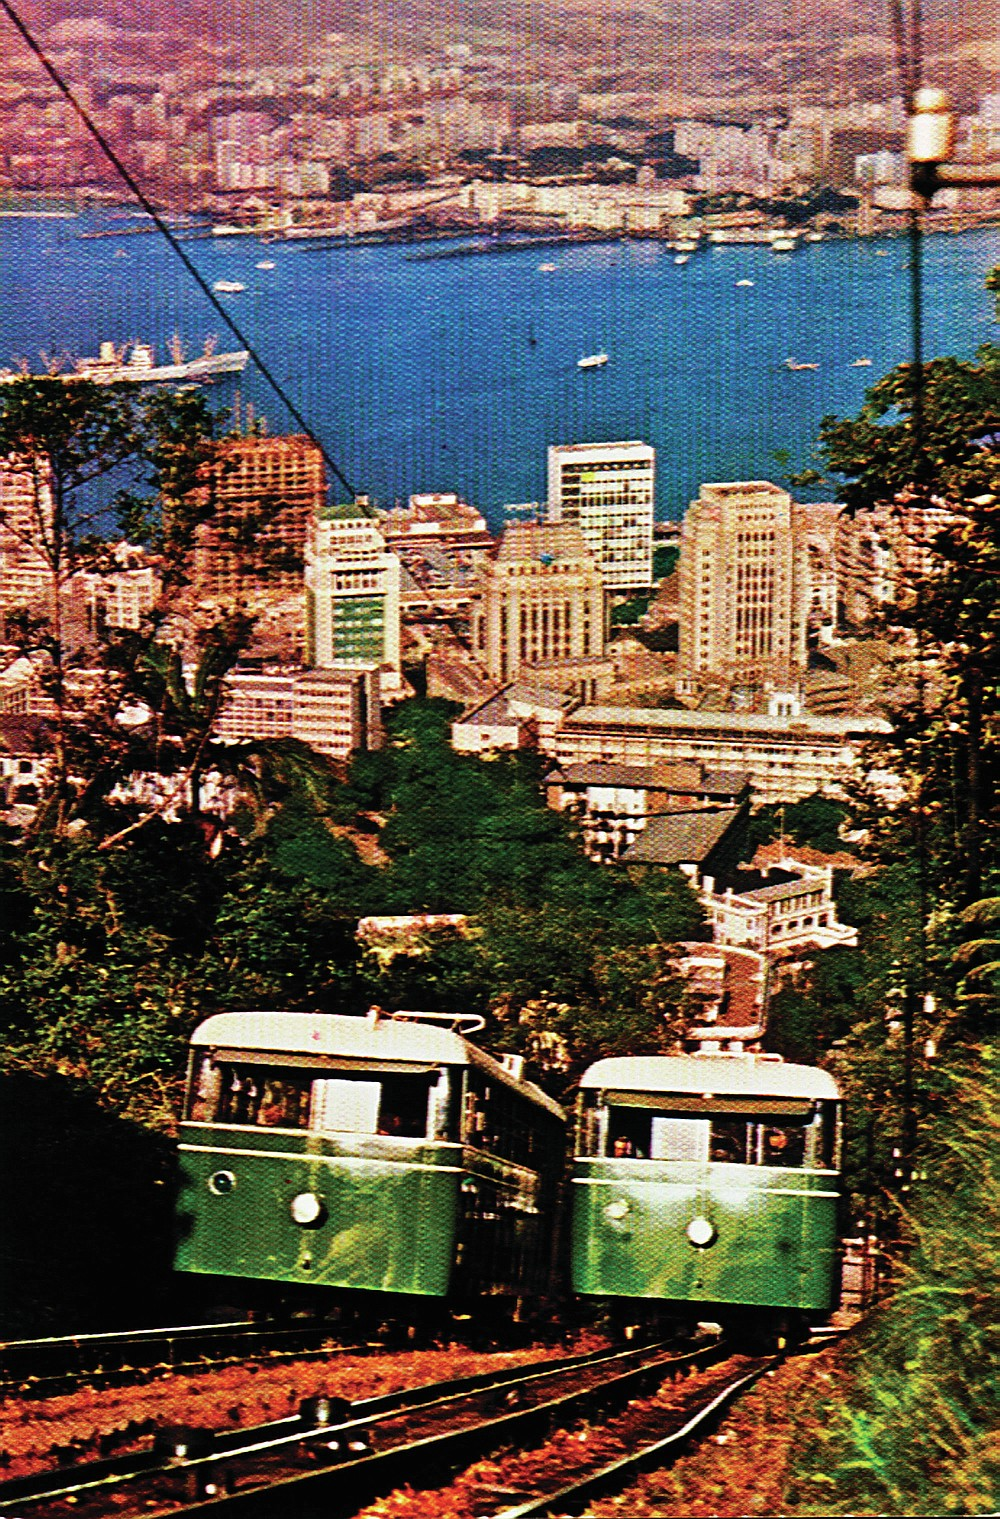 In this undated photo provided by Hong Kong Peak Tramways, a 3rd generation Peak Tram which serviced from 1948-1959 is seen in Hong Kong. The Peak Tram started operations in 1888, when Hong Kong was a British colony, to transport people up Victoria Peak instead of using sedan chairs. The original carriages were made of varnished timber and seated 30 passengers in three classes. (Hong Kong Peak Tramways via AP)